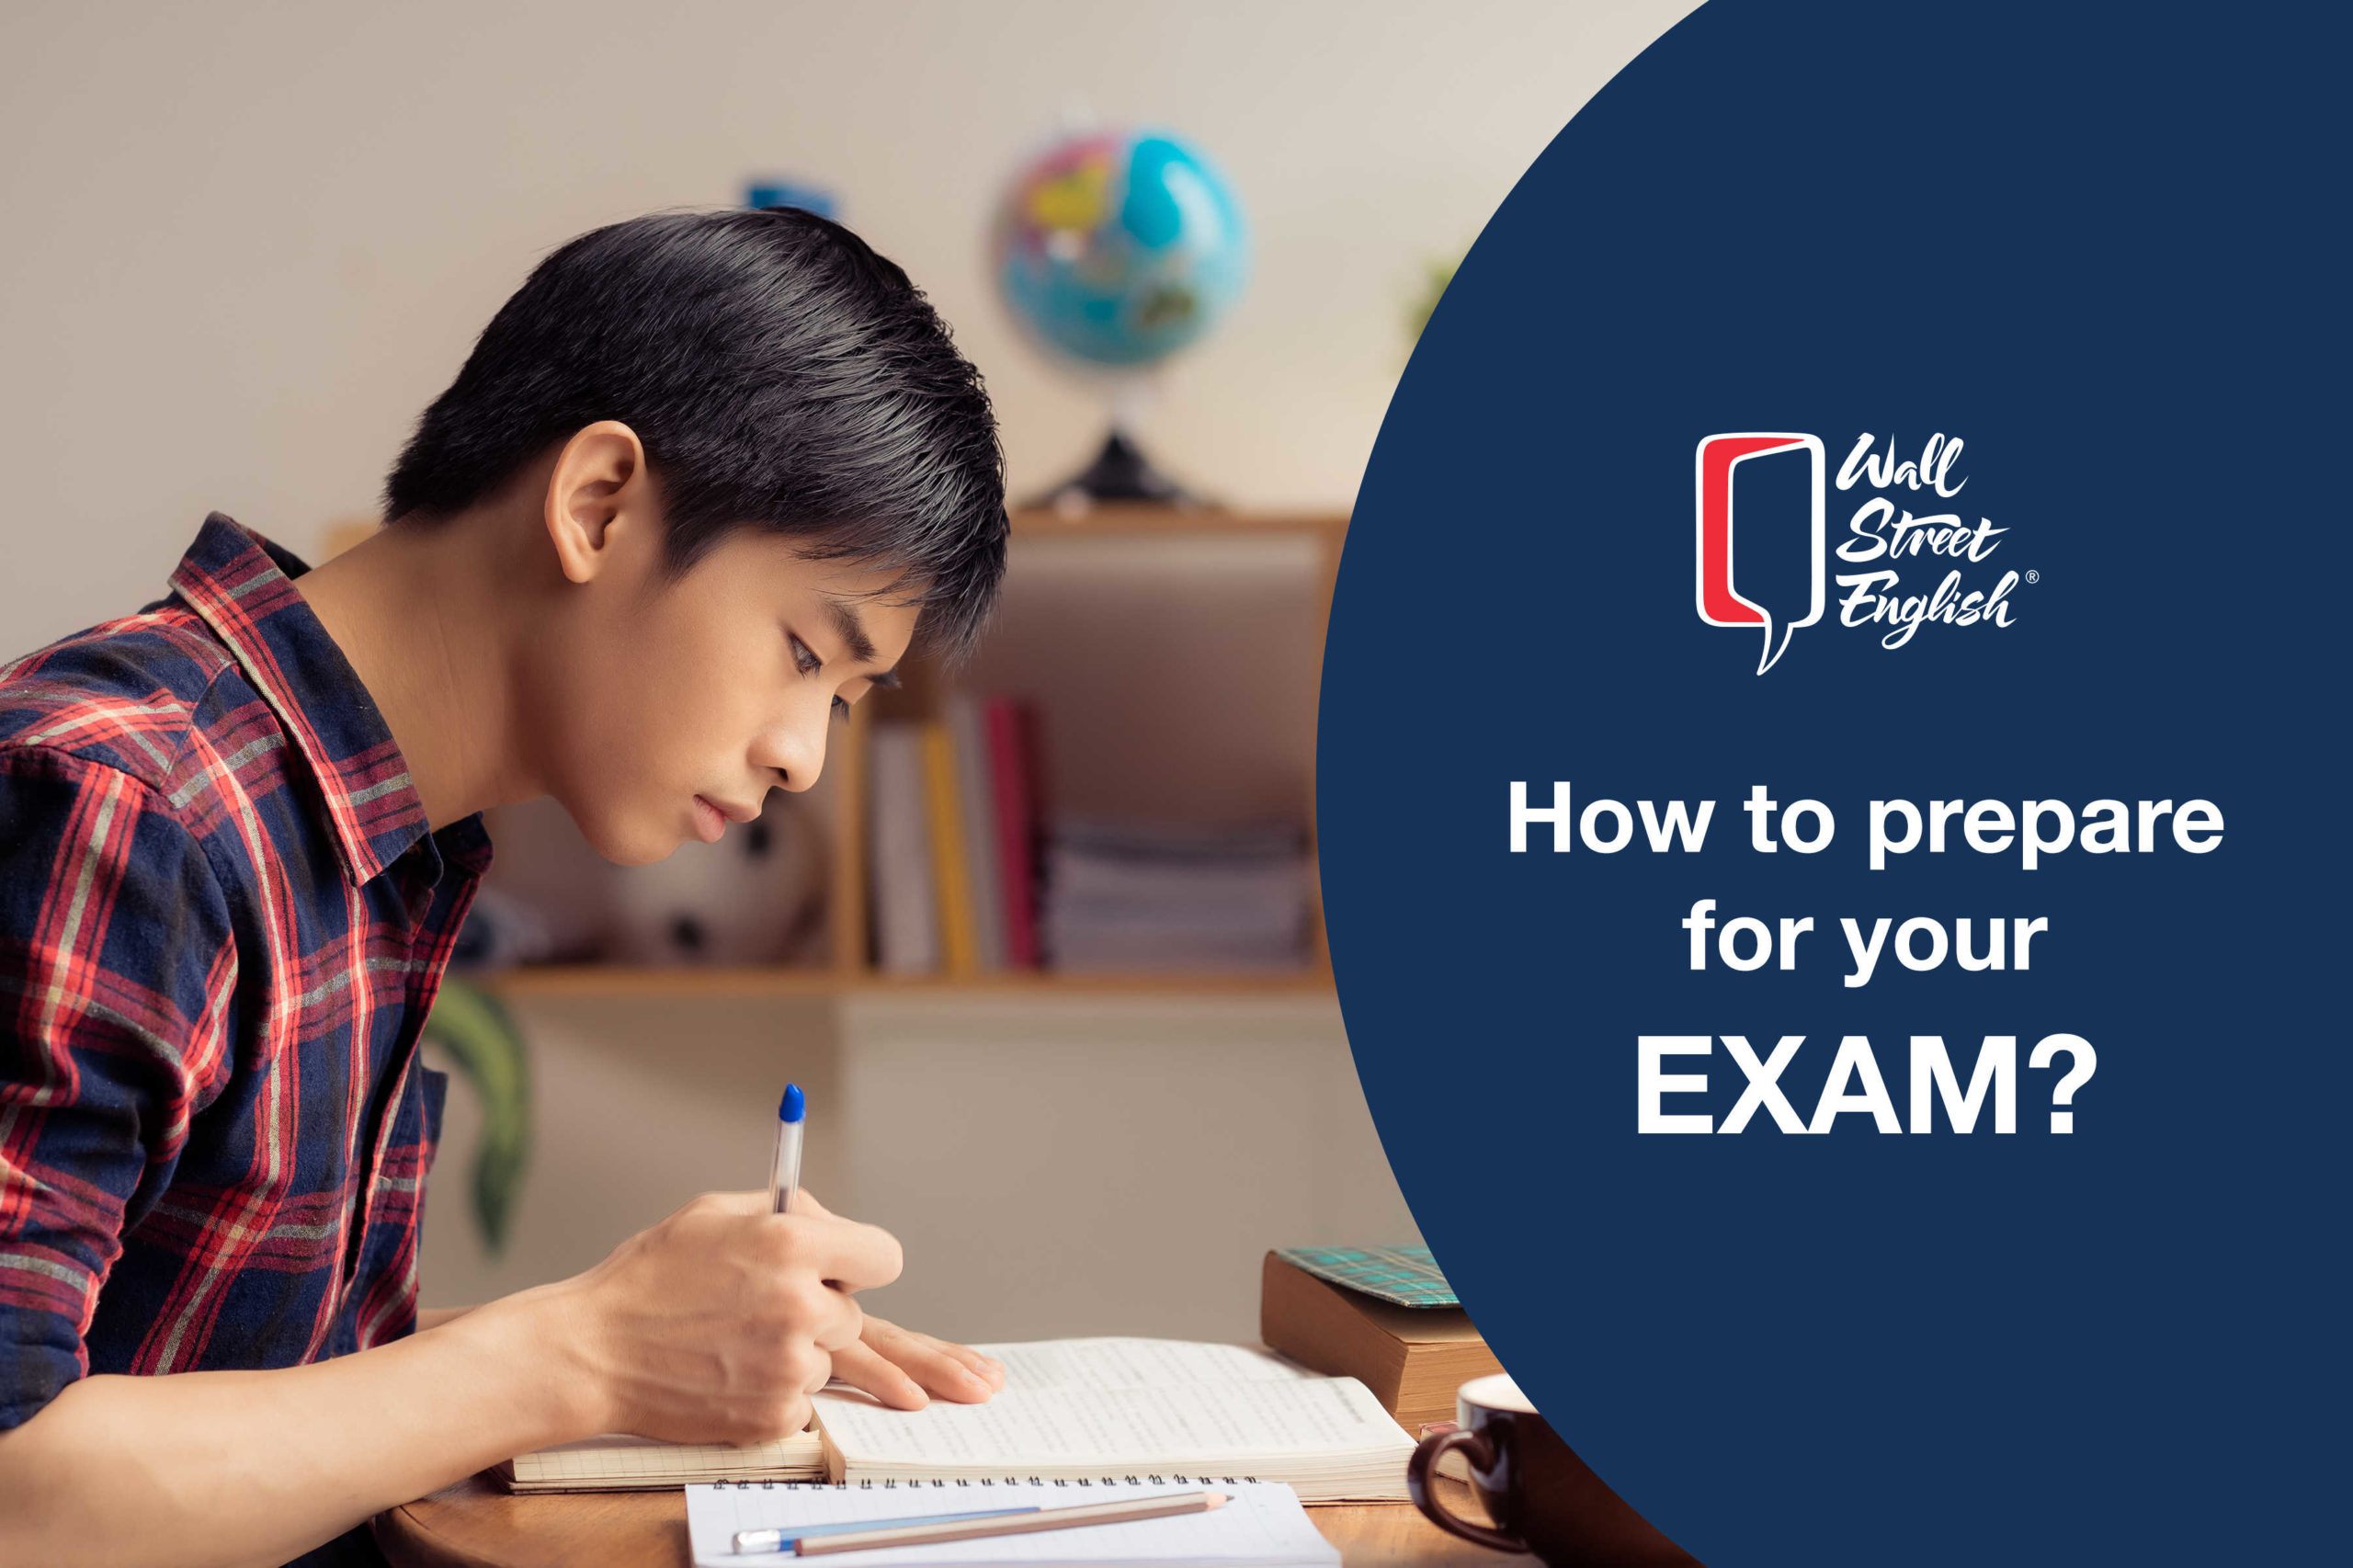 How to Prepare Your Exam